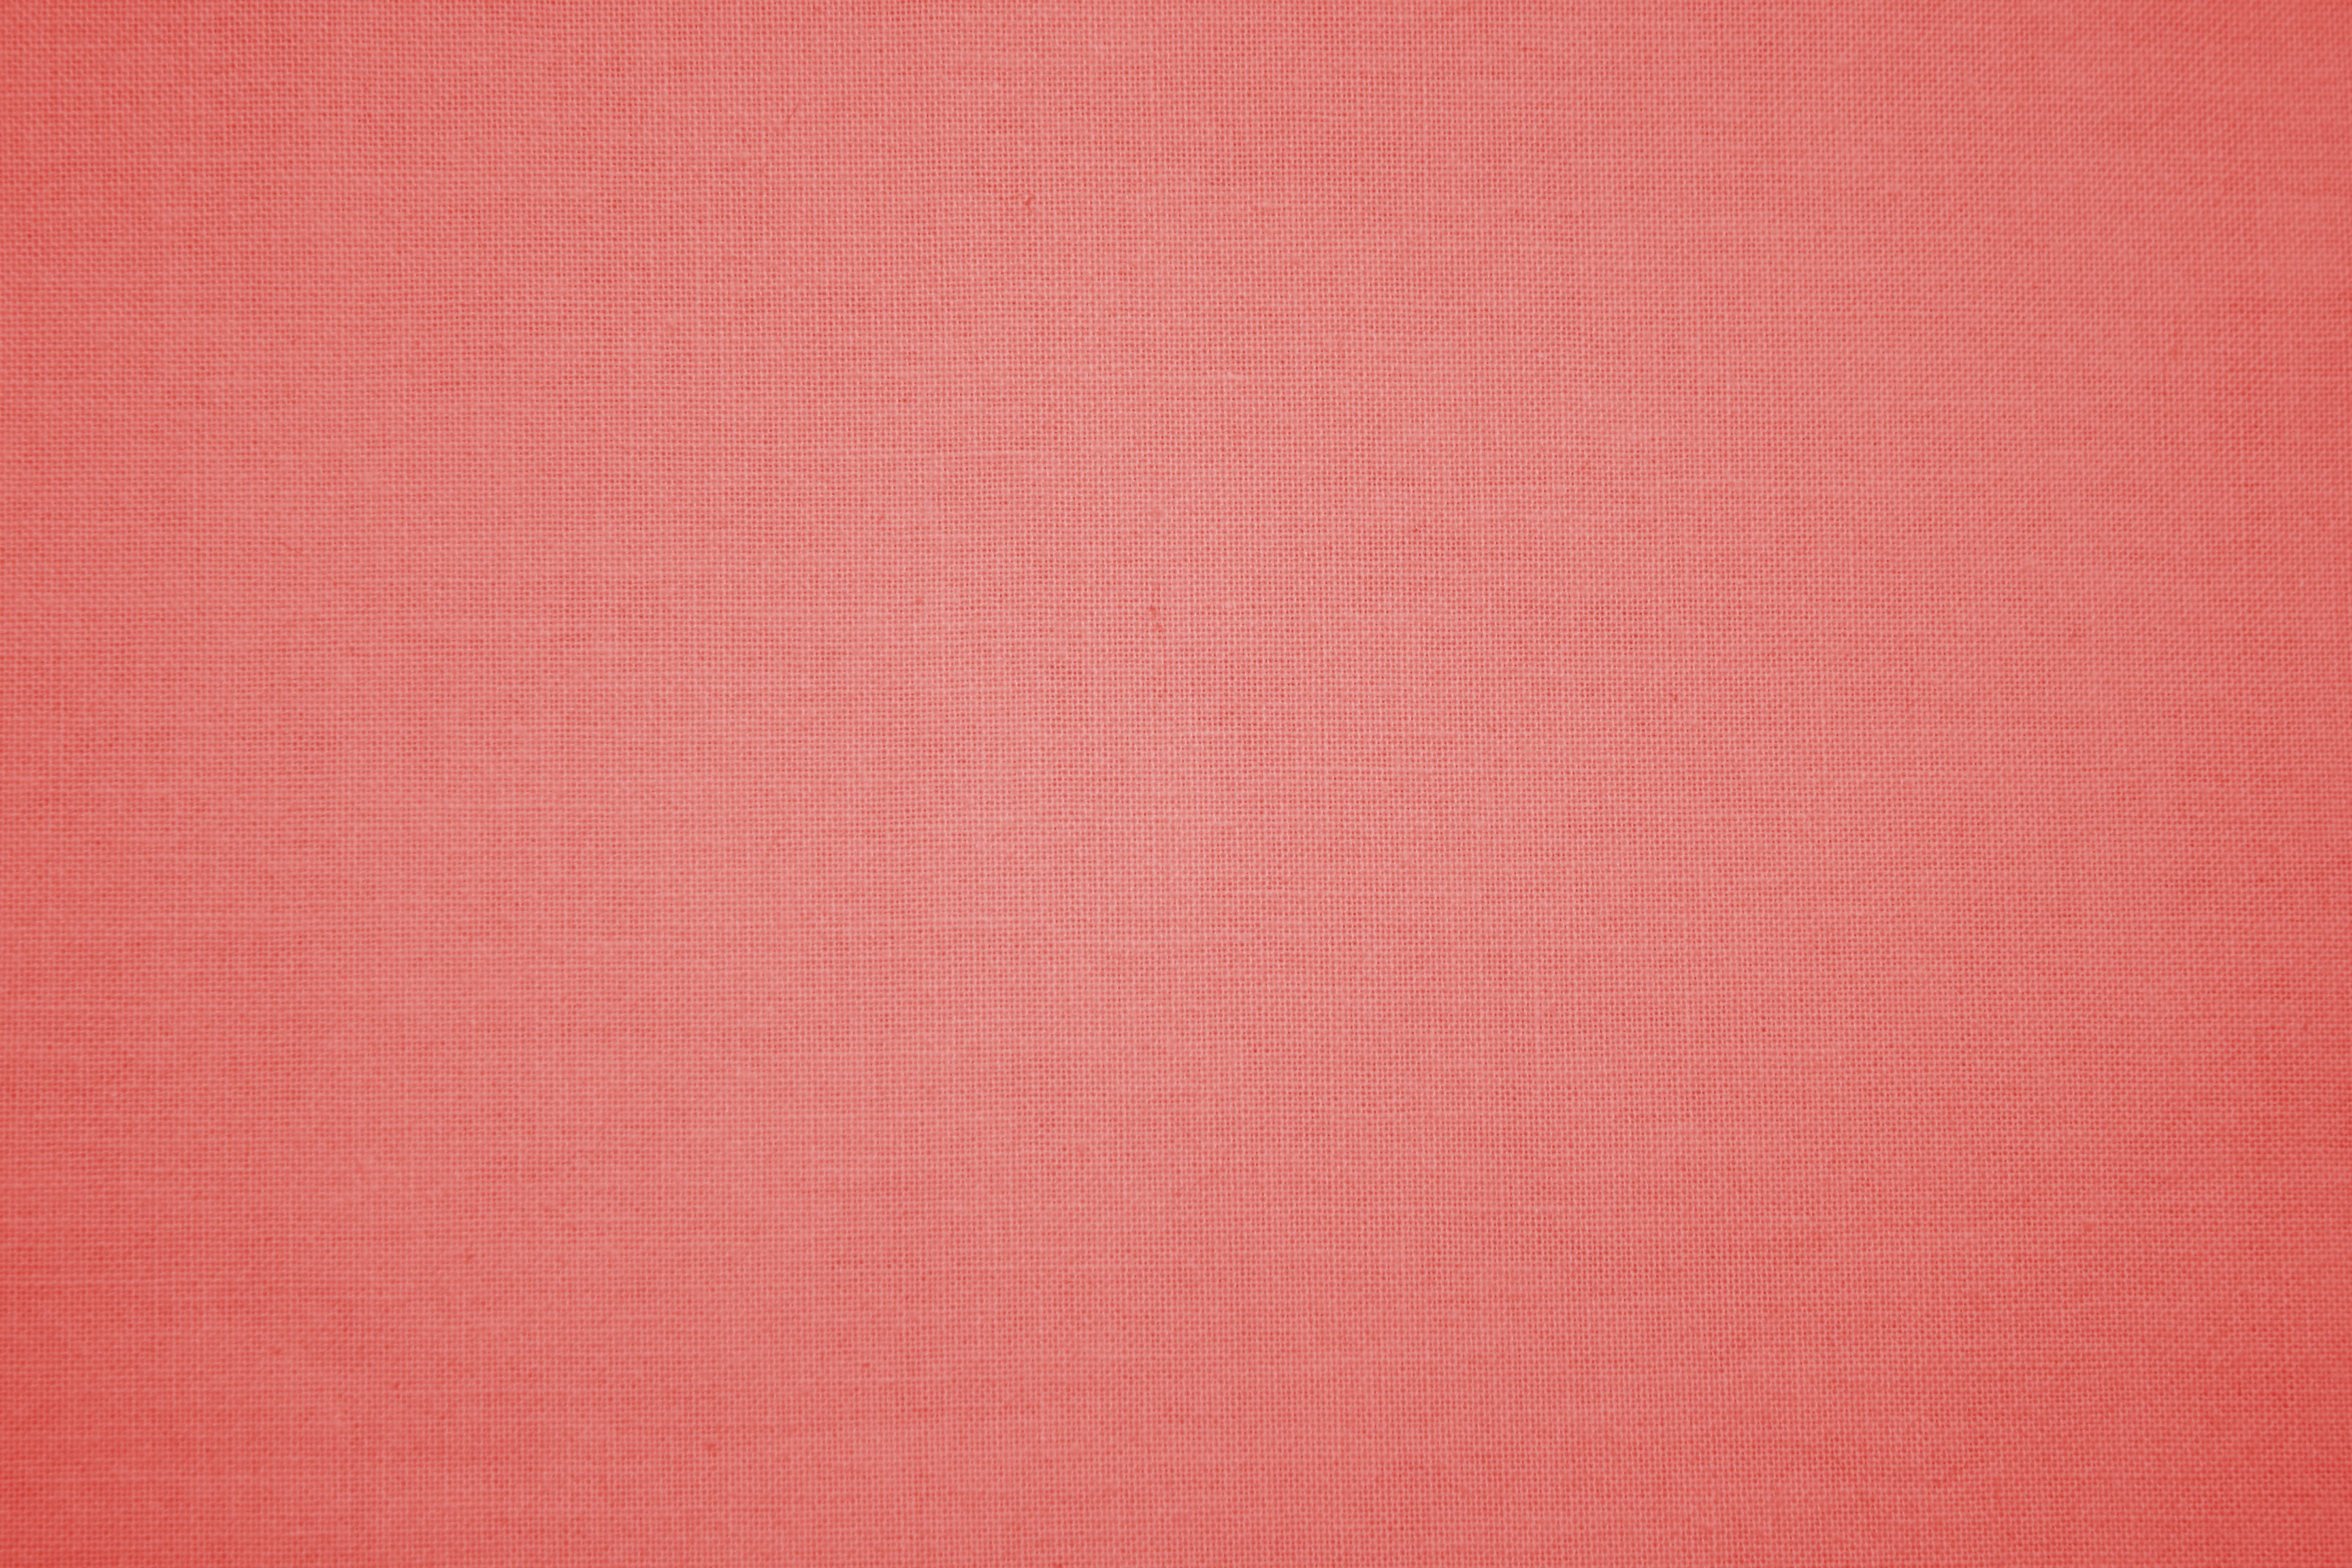 Light Red Canvas Fabric Texture Picture Photograph Photos 3600x2400